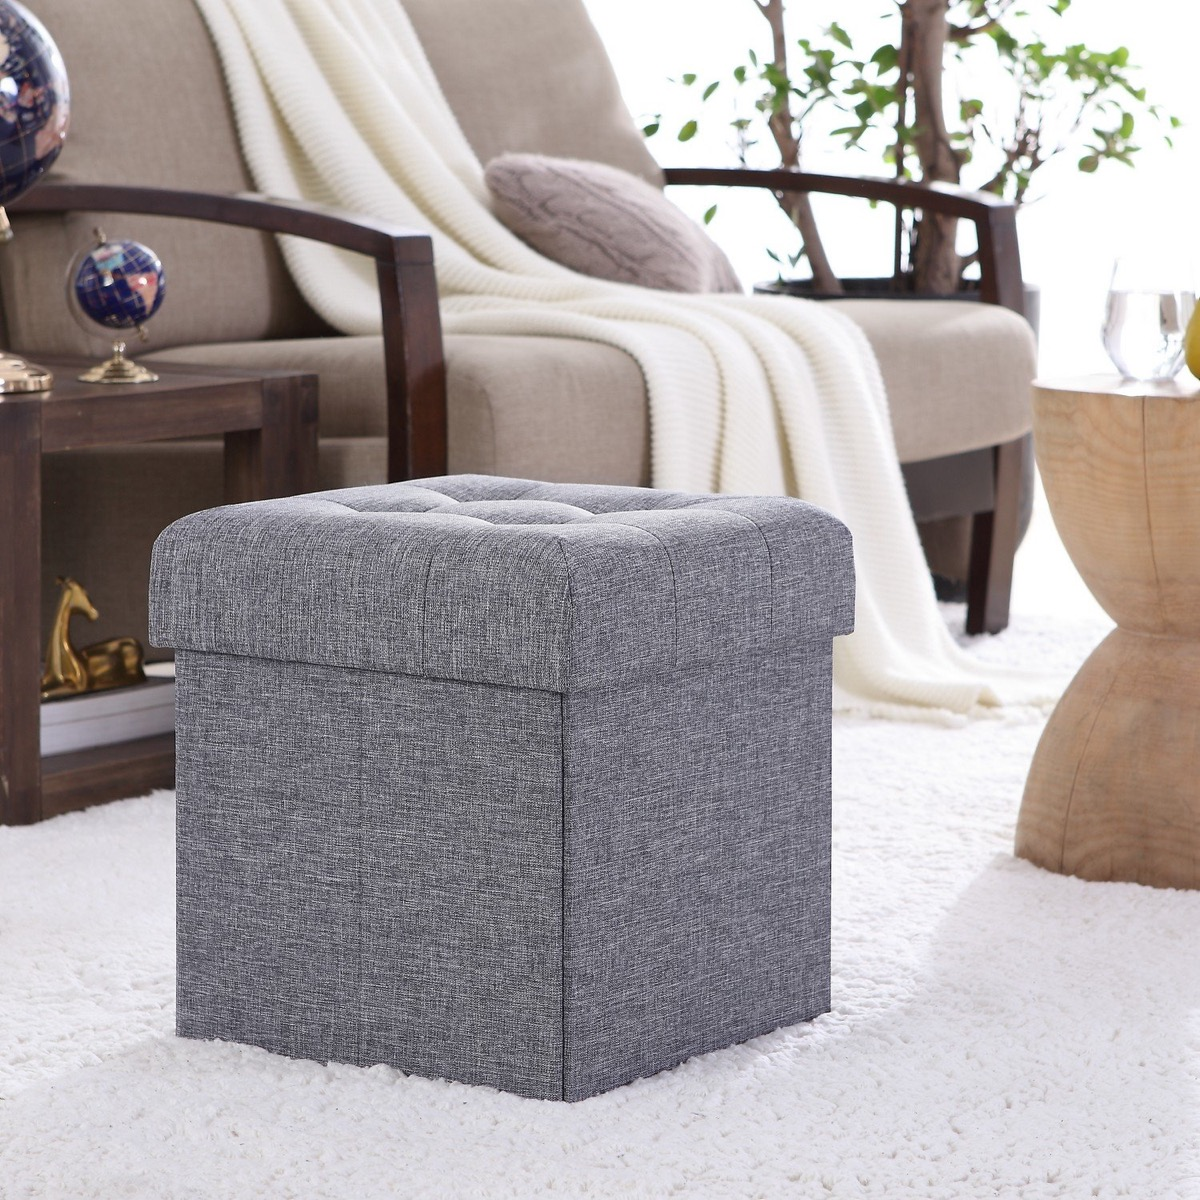 cube-storage-bench-ottoman-with-grey-upholstery-collapsible